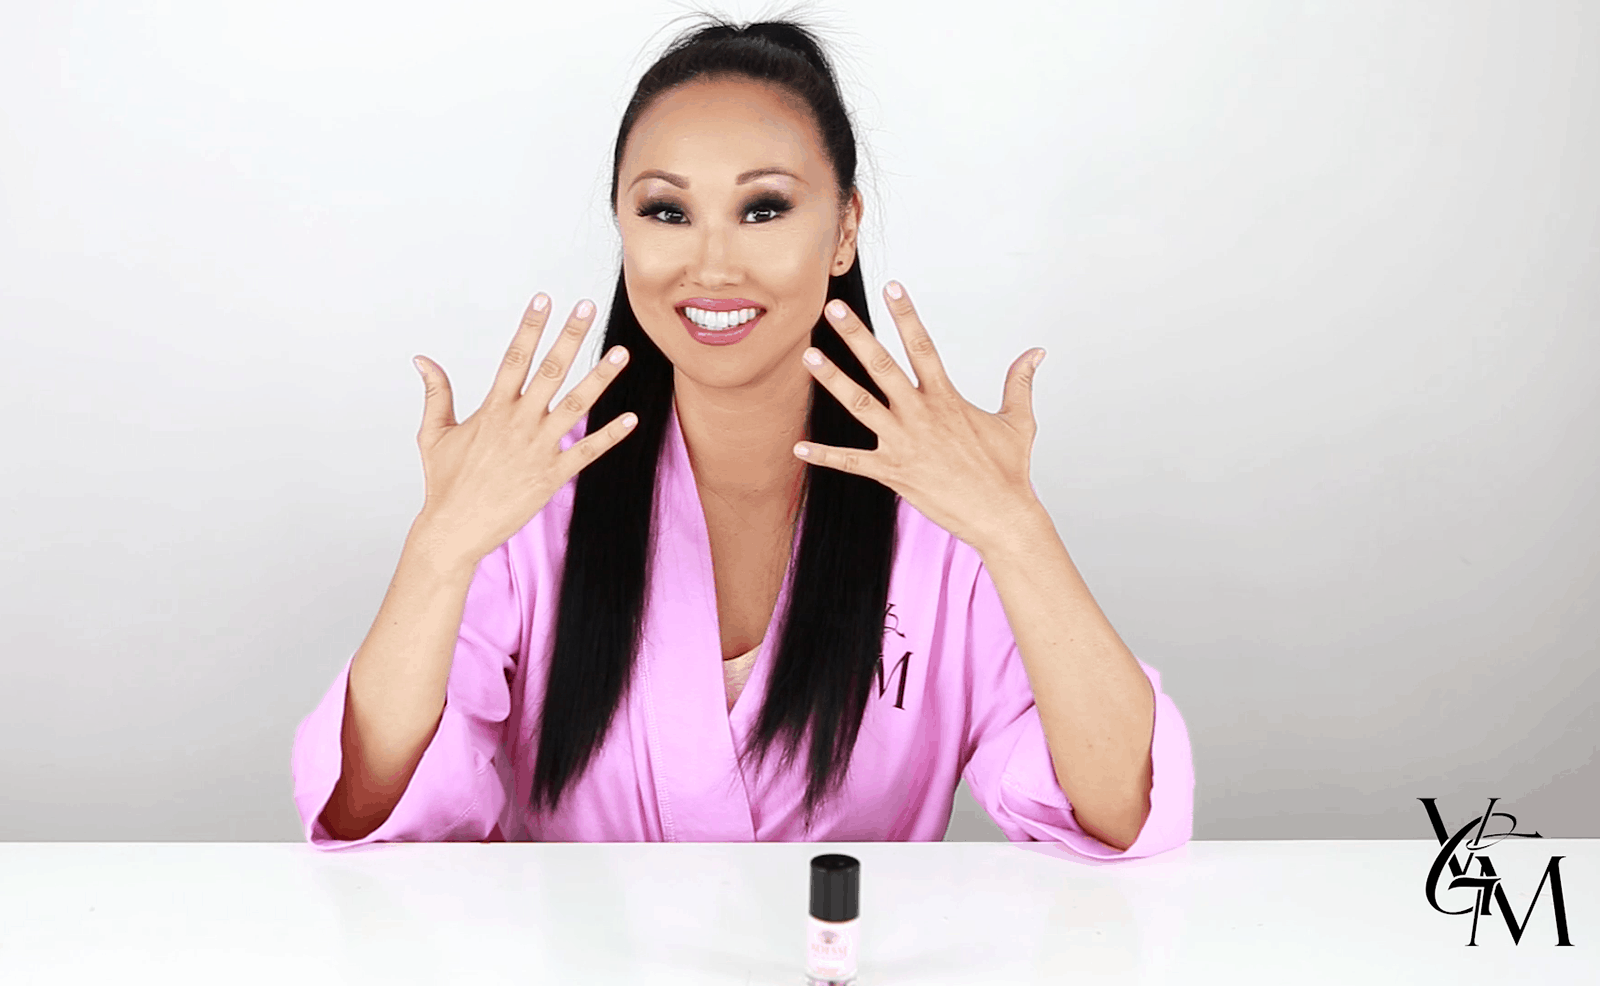 What Nail Color to Wear for an Audition